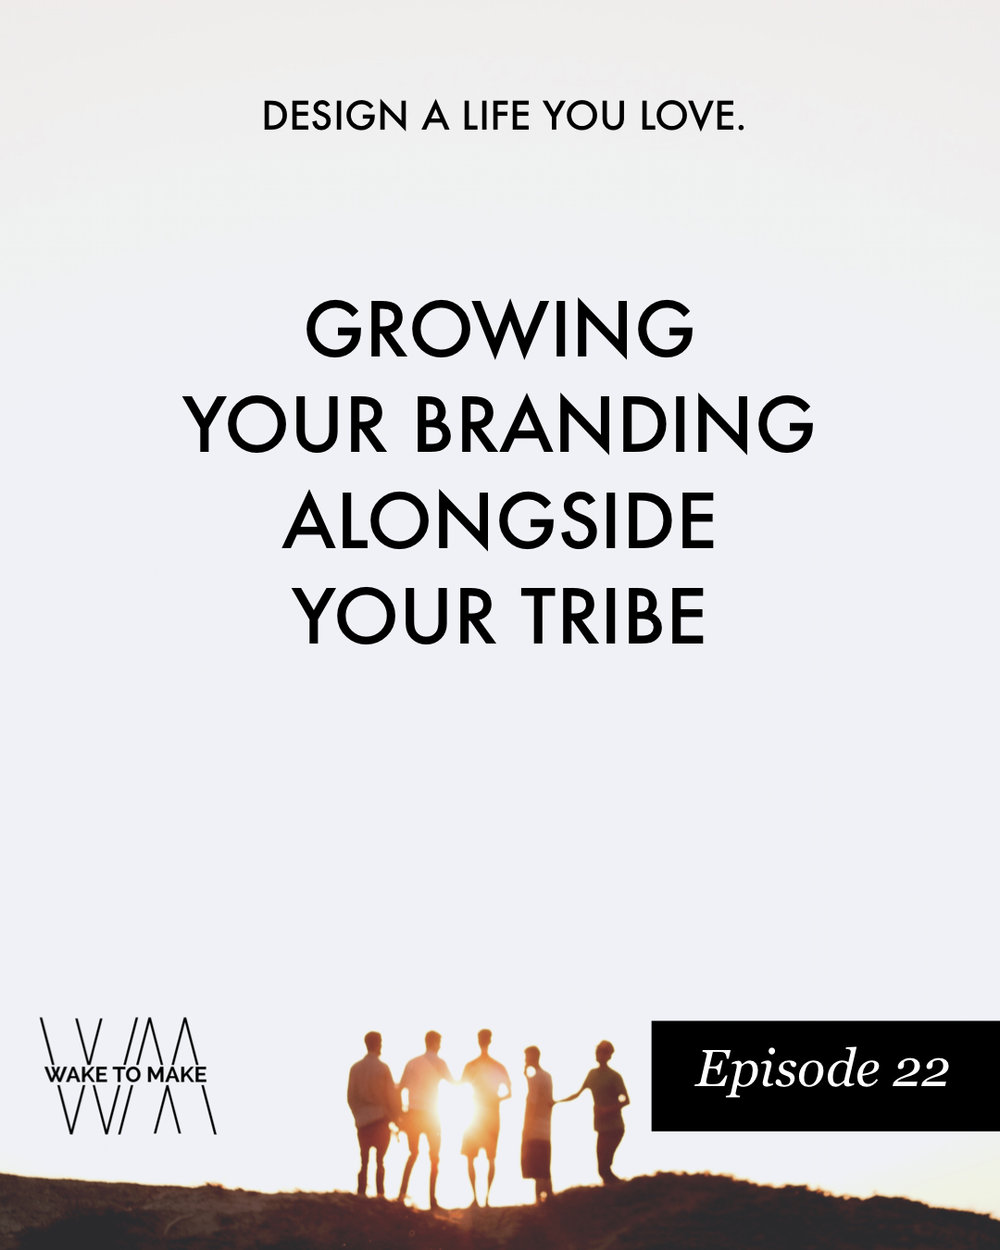 Episode 22 - Growing Your Branding Alongside Your Tribe